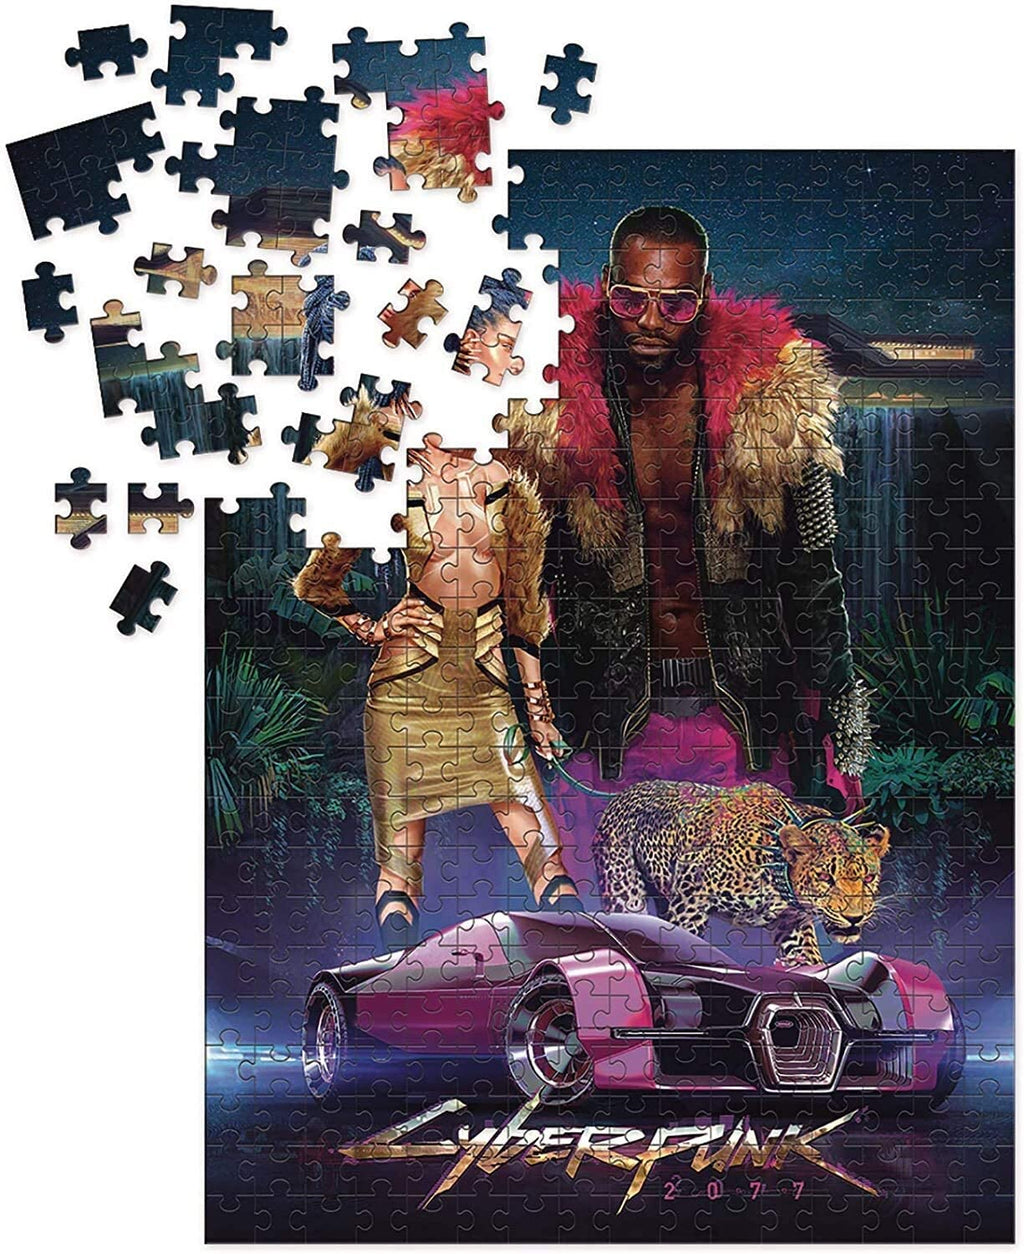 Cyberpunk 2077 Neokitsch, 1000 Pieces Puzzle